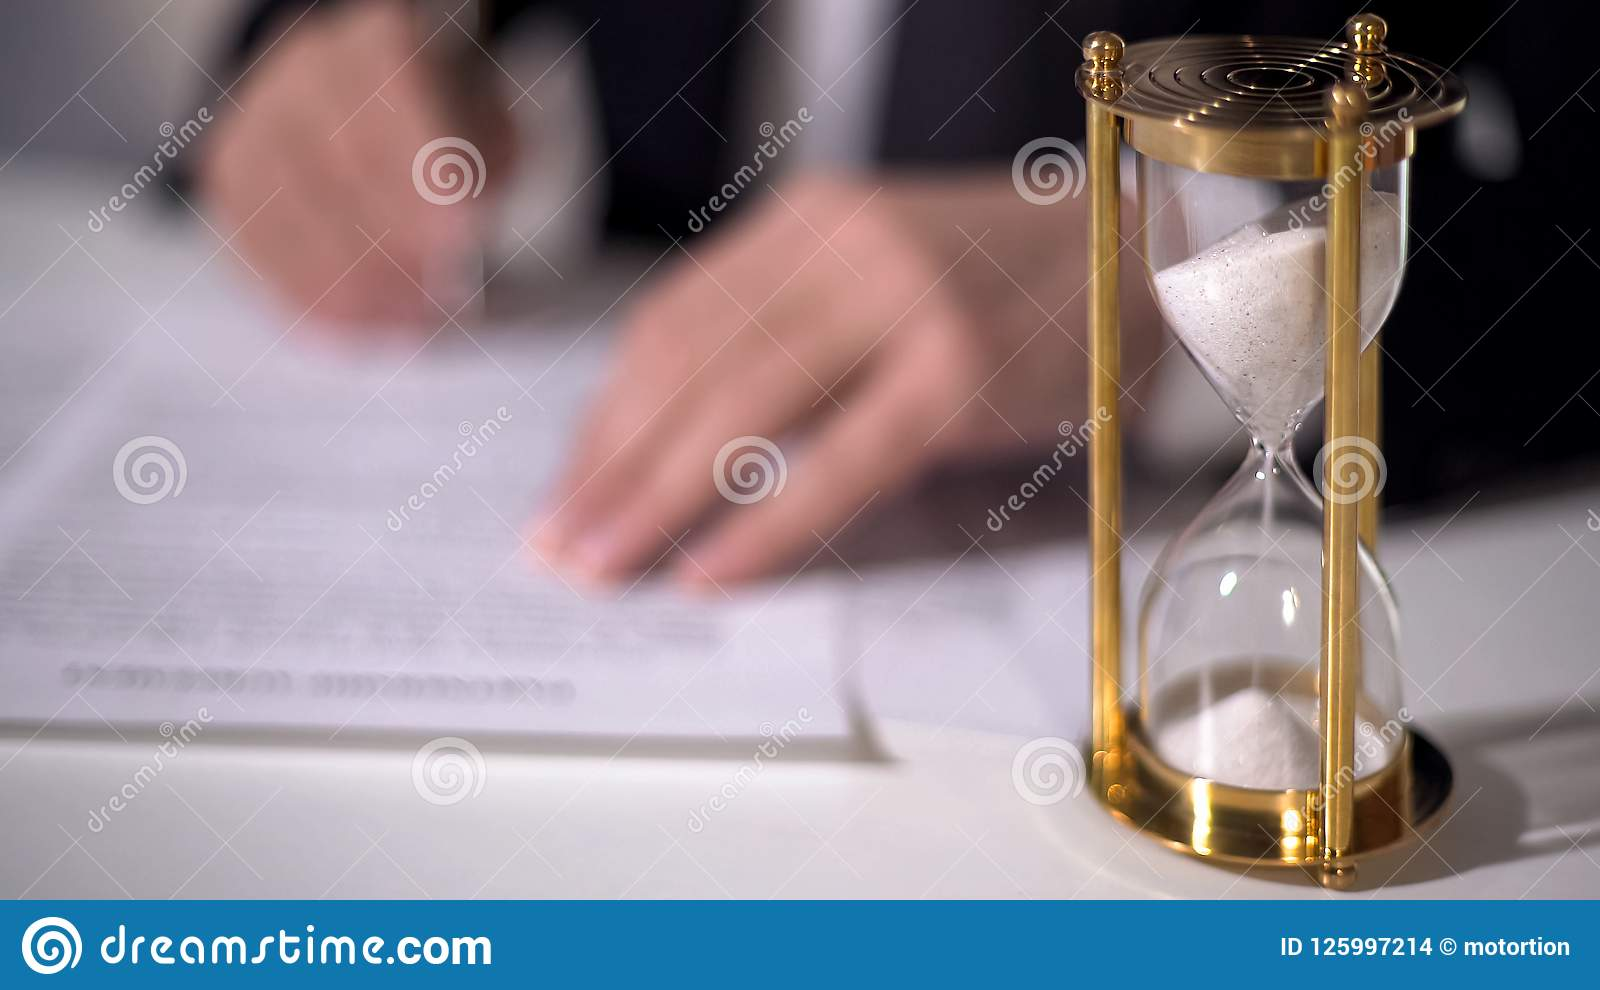 Closeup of sand clock measuring time, official signing important reform document